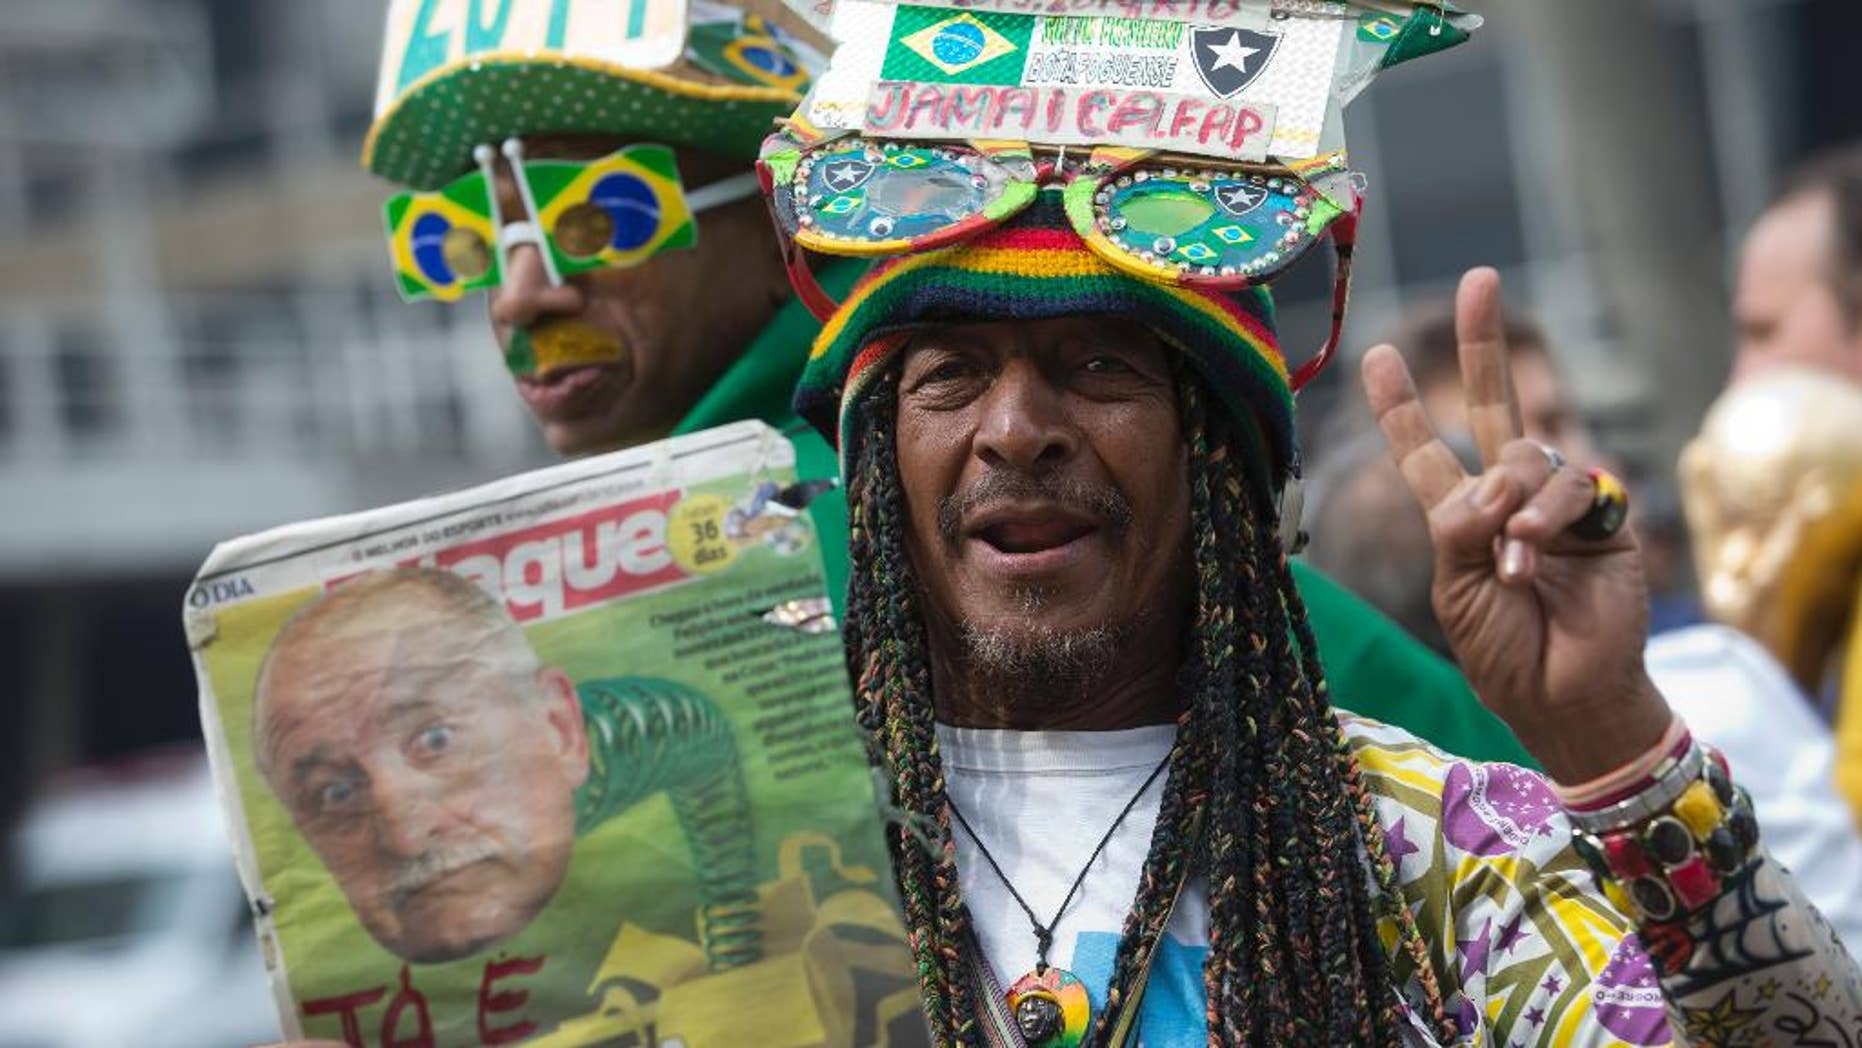 A Brazil soccer fan holds up a newspaper with a photo of Brazil's coach Luiz Felipe Scolari and flashes a victory sign outside the venue where coach Luiz Felipe Scolari is announcing his squad for the upcoming international soccer tournament in Rio de Janeiro, Brazil, Wednesday, May 7, 2014. The team will mix talented young stars such as Neymar and Oscar with more experienced players such as Dani Alves, David Luiz, Thiago Silva and Hulk. Past stars such as Ronaldinho, Kaka and Robinho were left off the squad as expected. (AP Photo/Silvia Izquierdo)